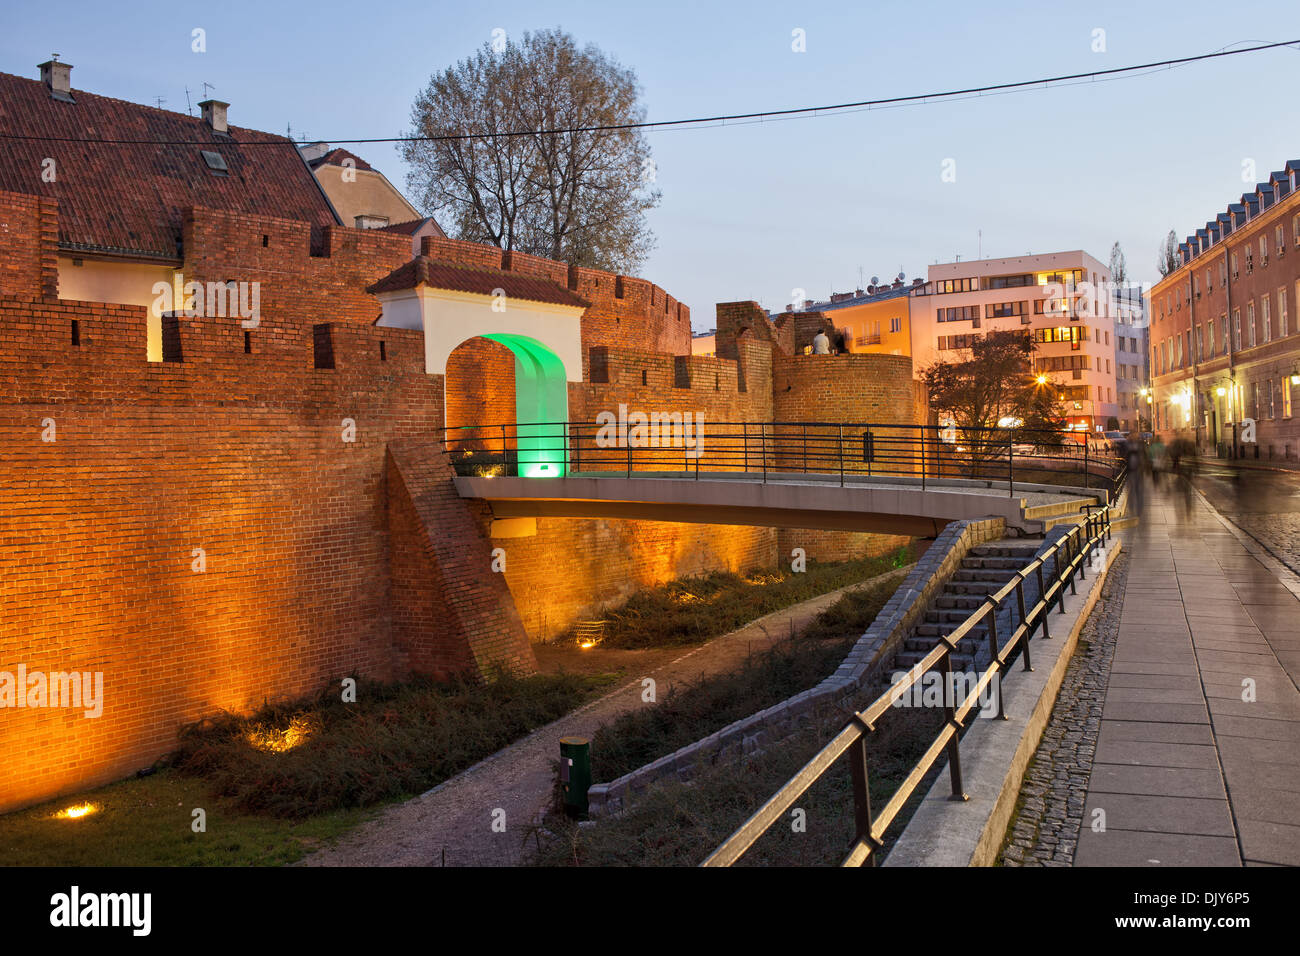 Illuminated Old Town fortified wall at twilight in Warsaw, Poland. - Stock Image